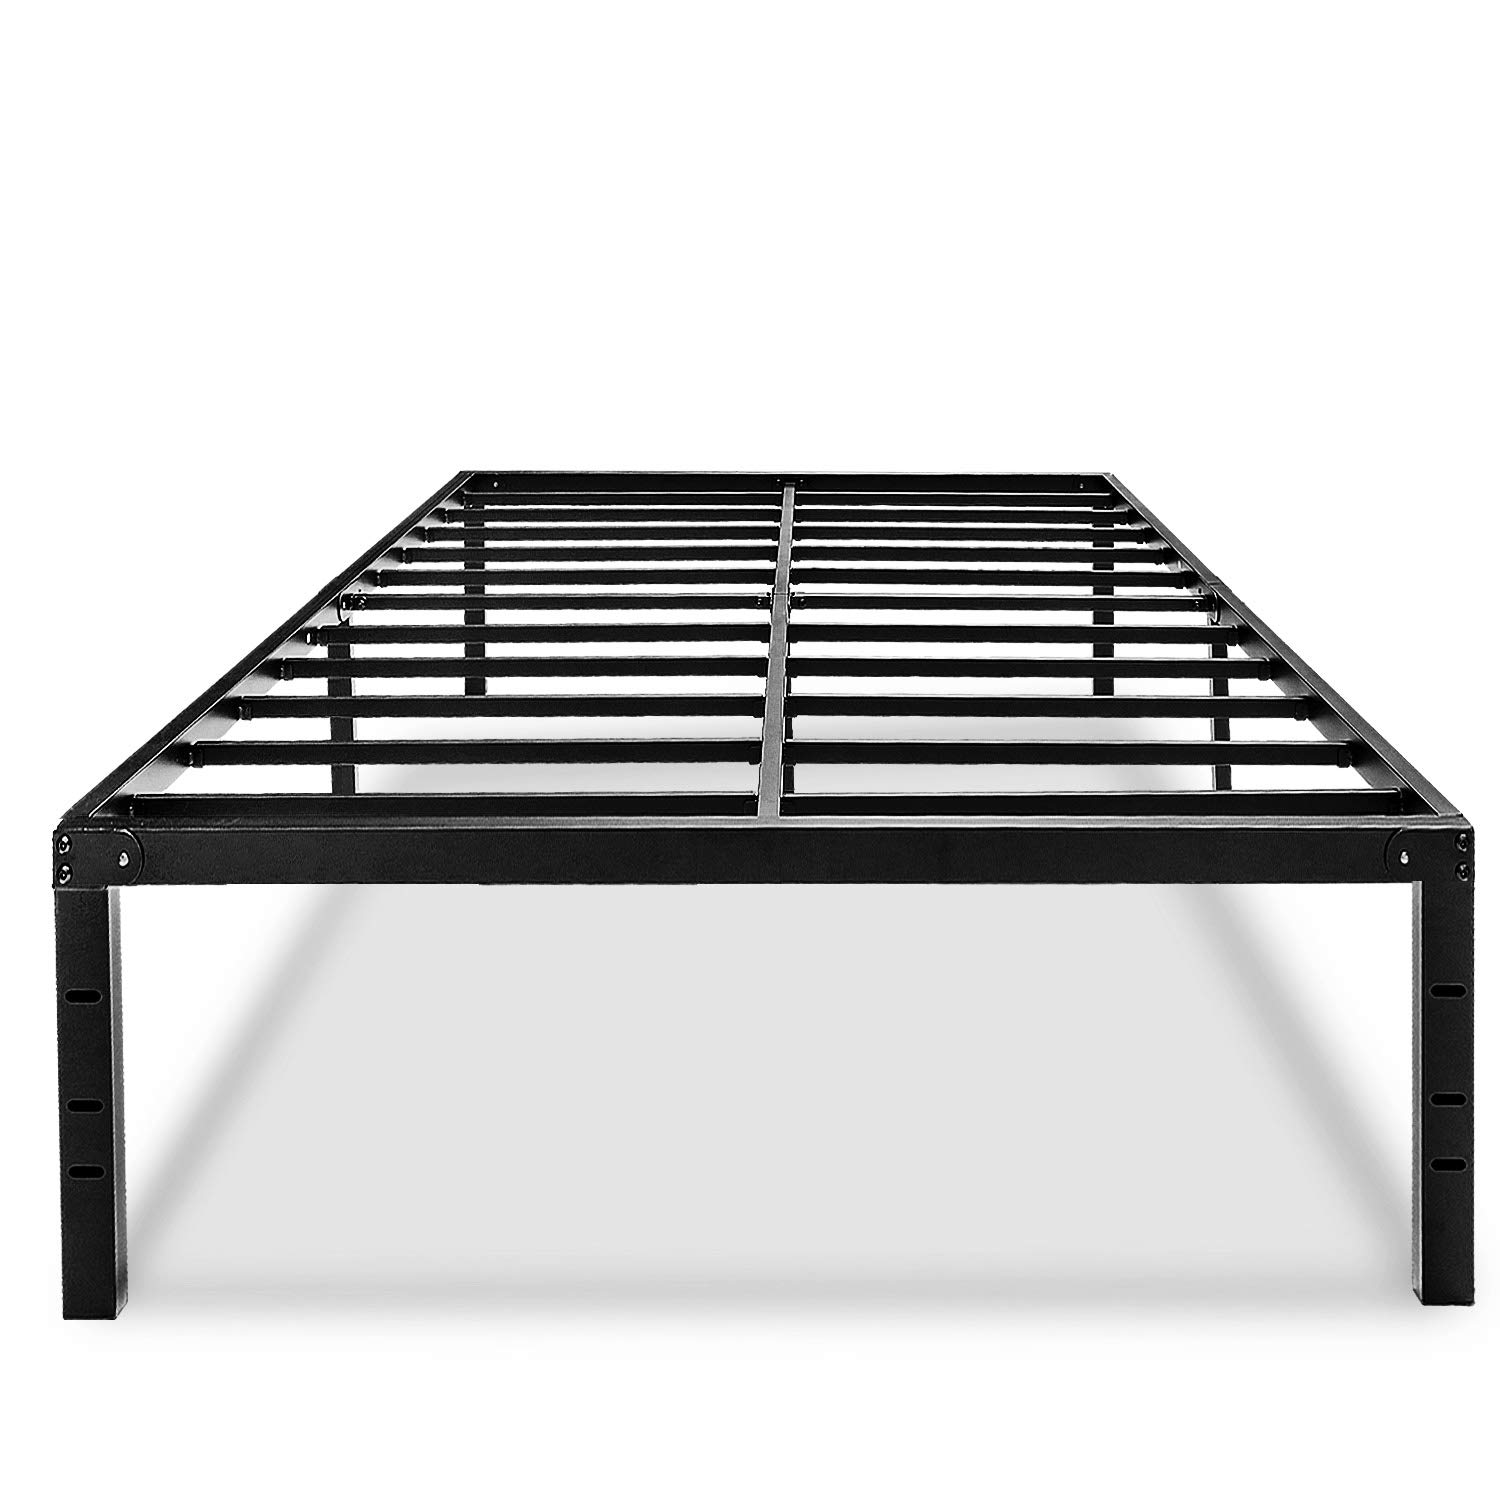 Metal Platform King Bed Frame 18 Inch Tall No Box Spring Needed With Storage Heavy Duty Bedframe Size by HAAGEEP